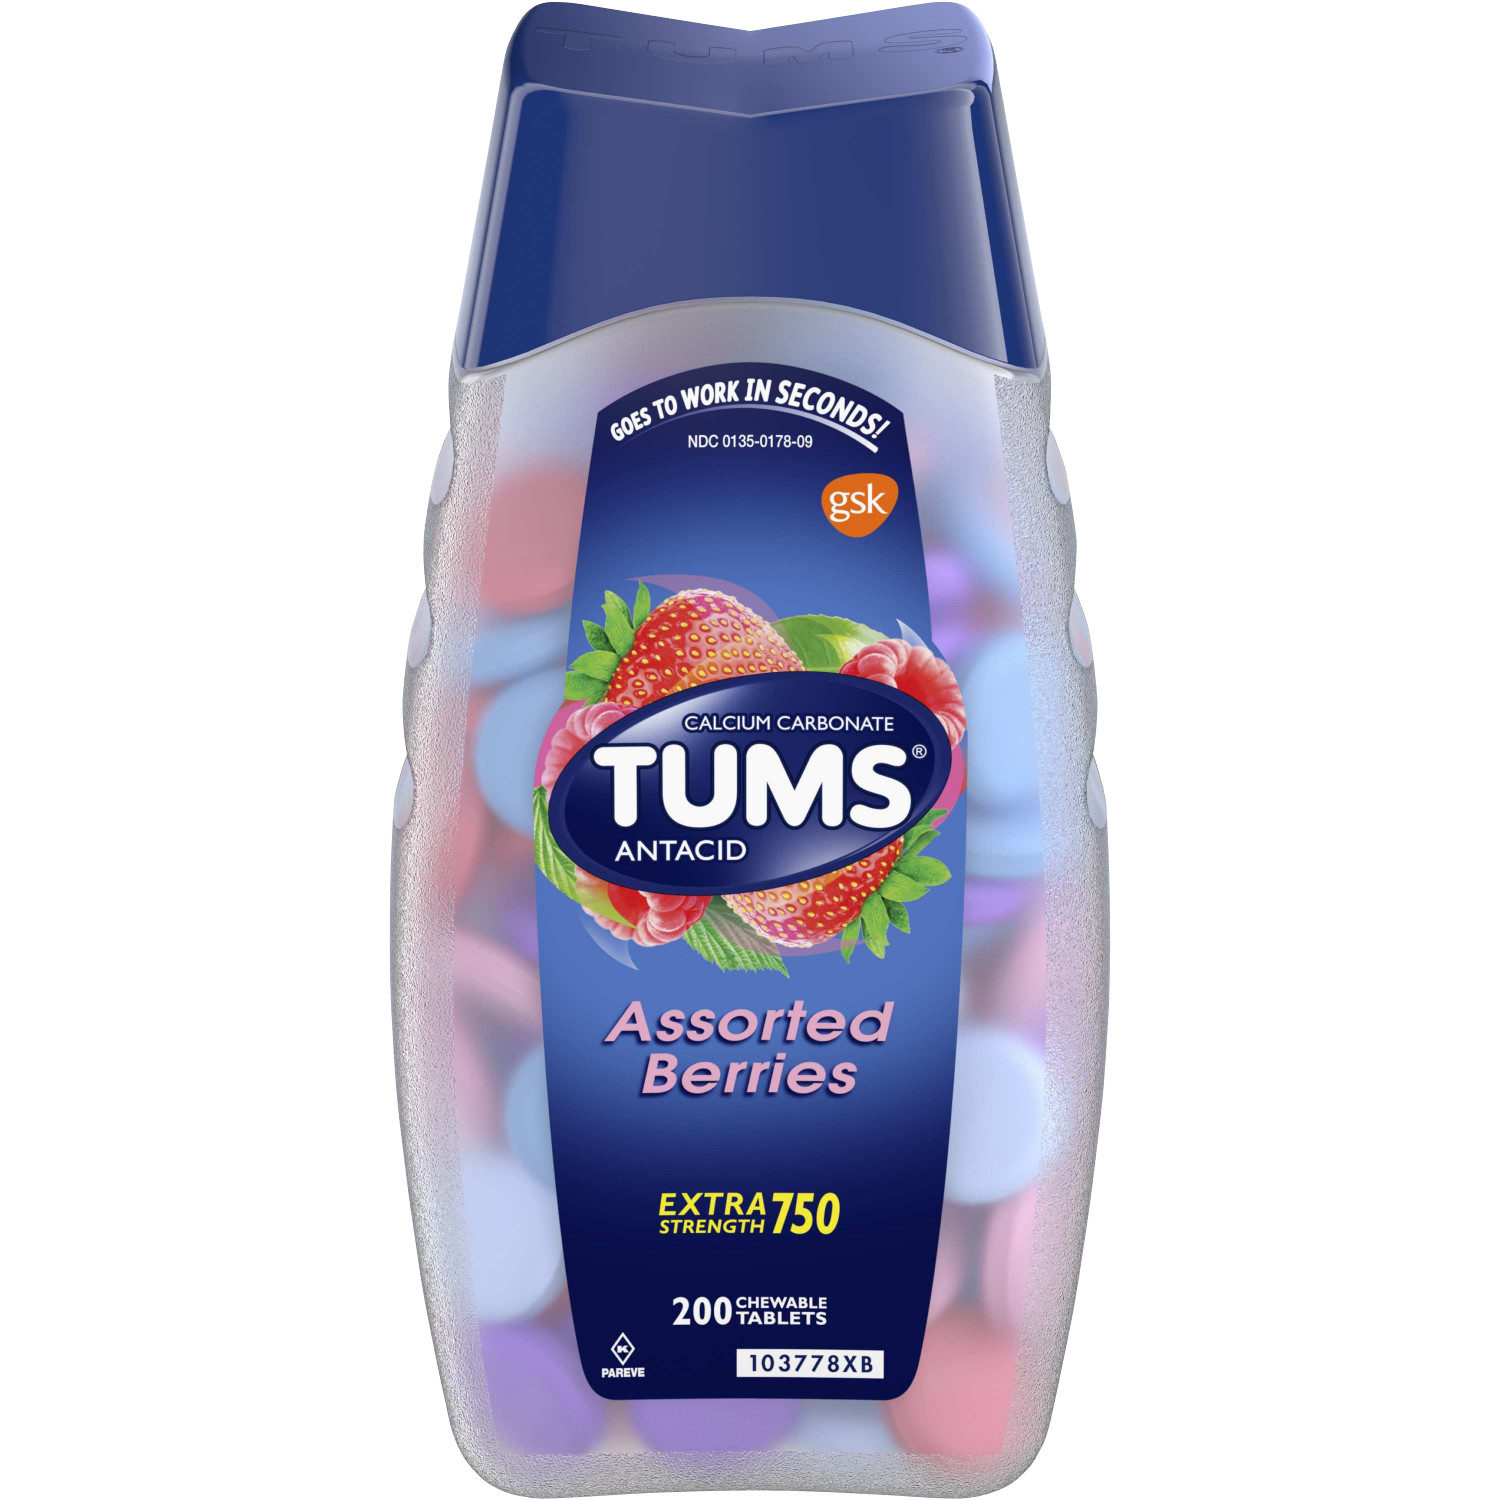 TUMS Antacid ChewableTablets for Heartburn Relief, Extra Strength, Assorted Berries, 200 Tablets